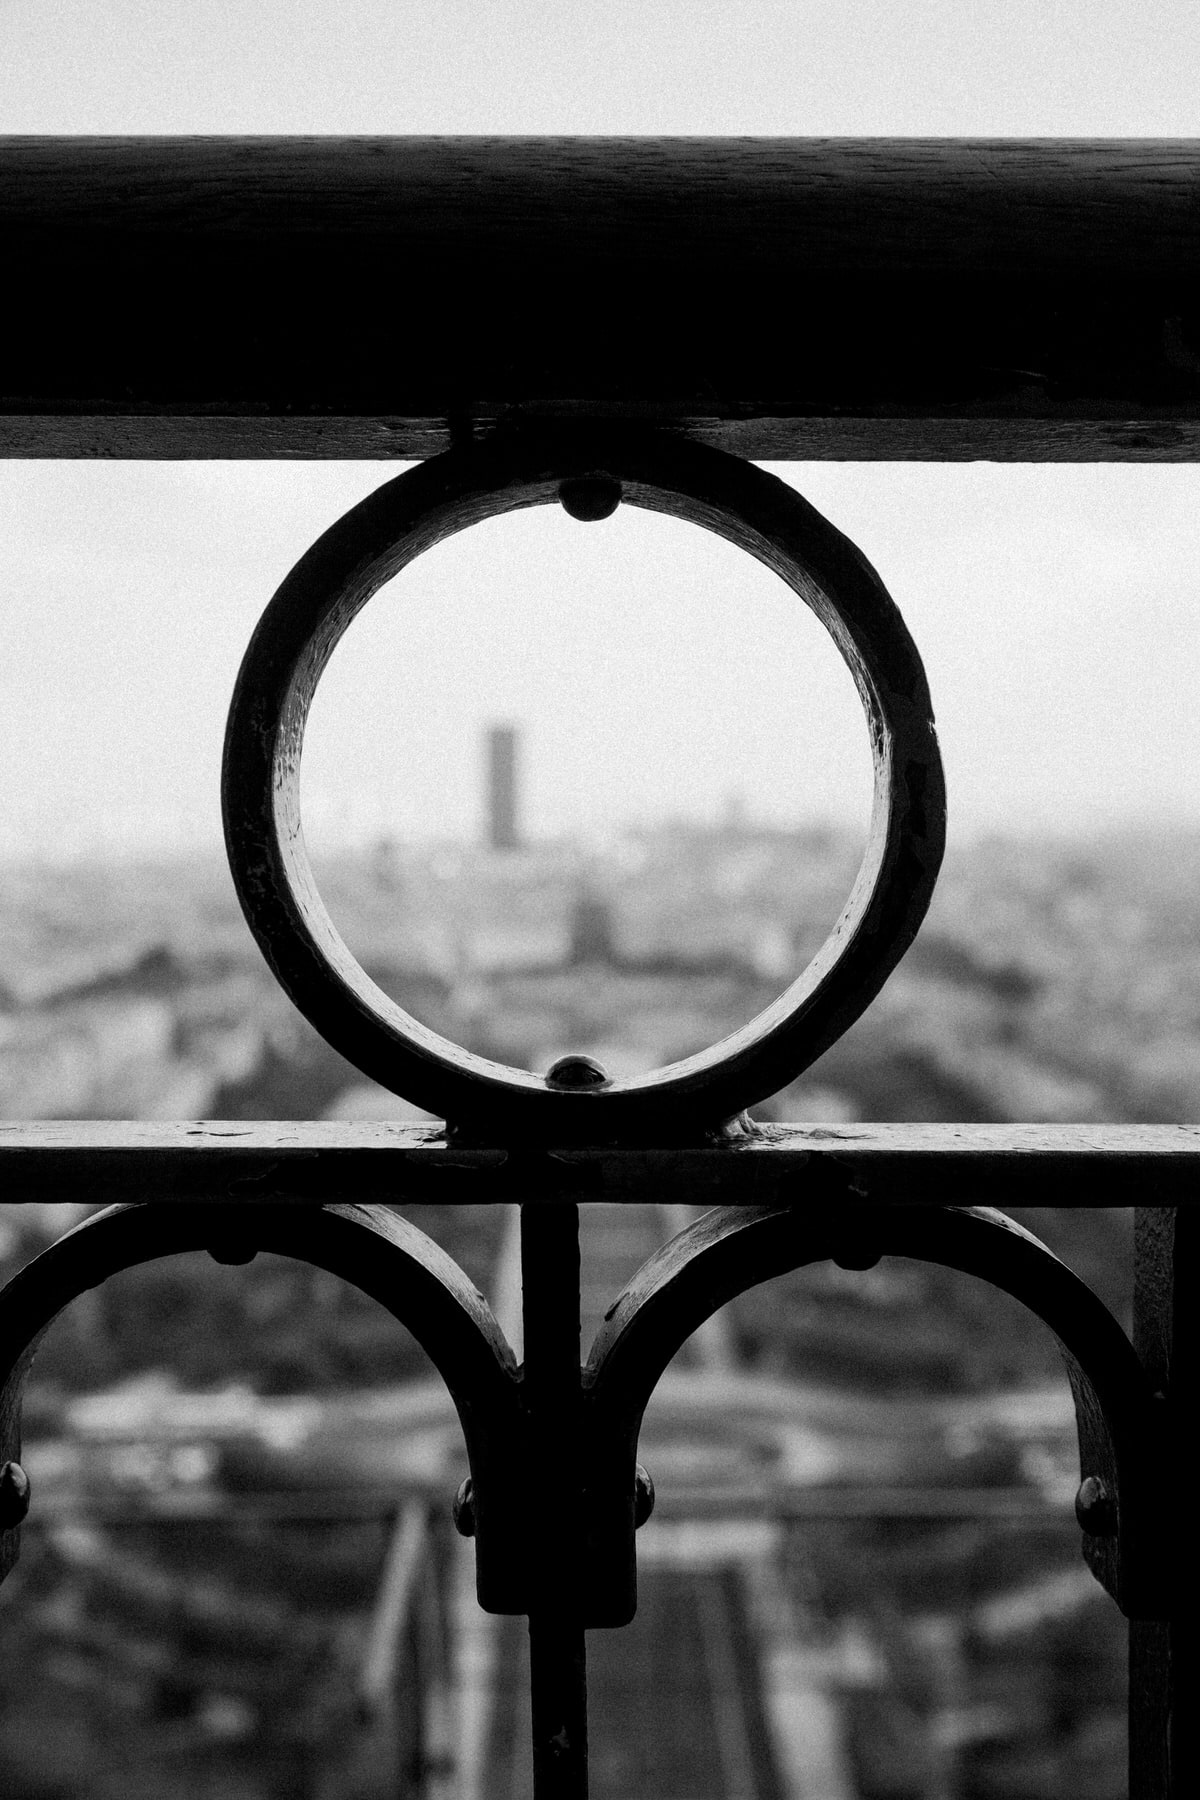 Eiffel-Tower-Paris-France-black-and-white-fine-art-photography-by-Studio-L-photographer-Laura-Schneider-_4641